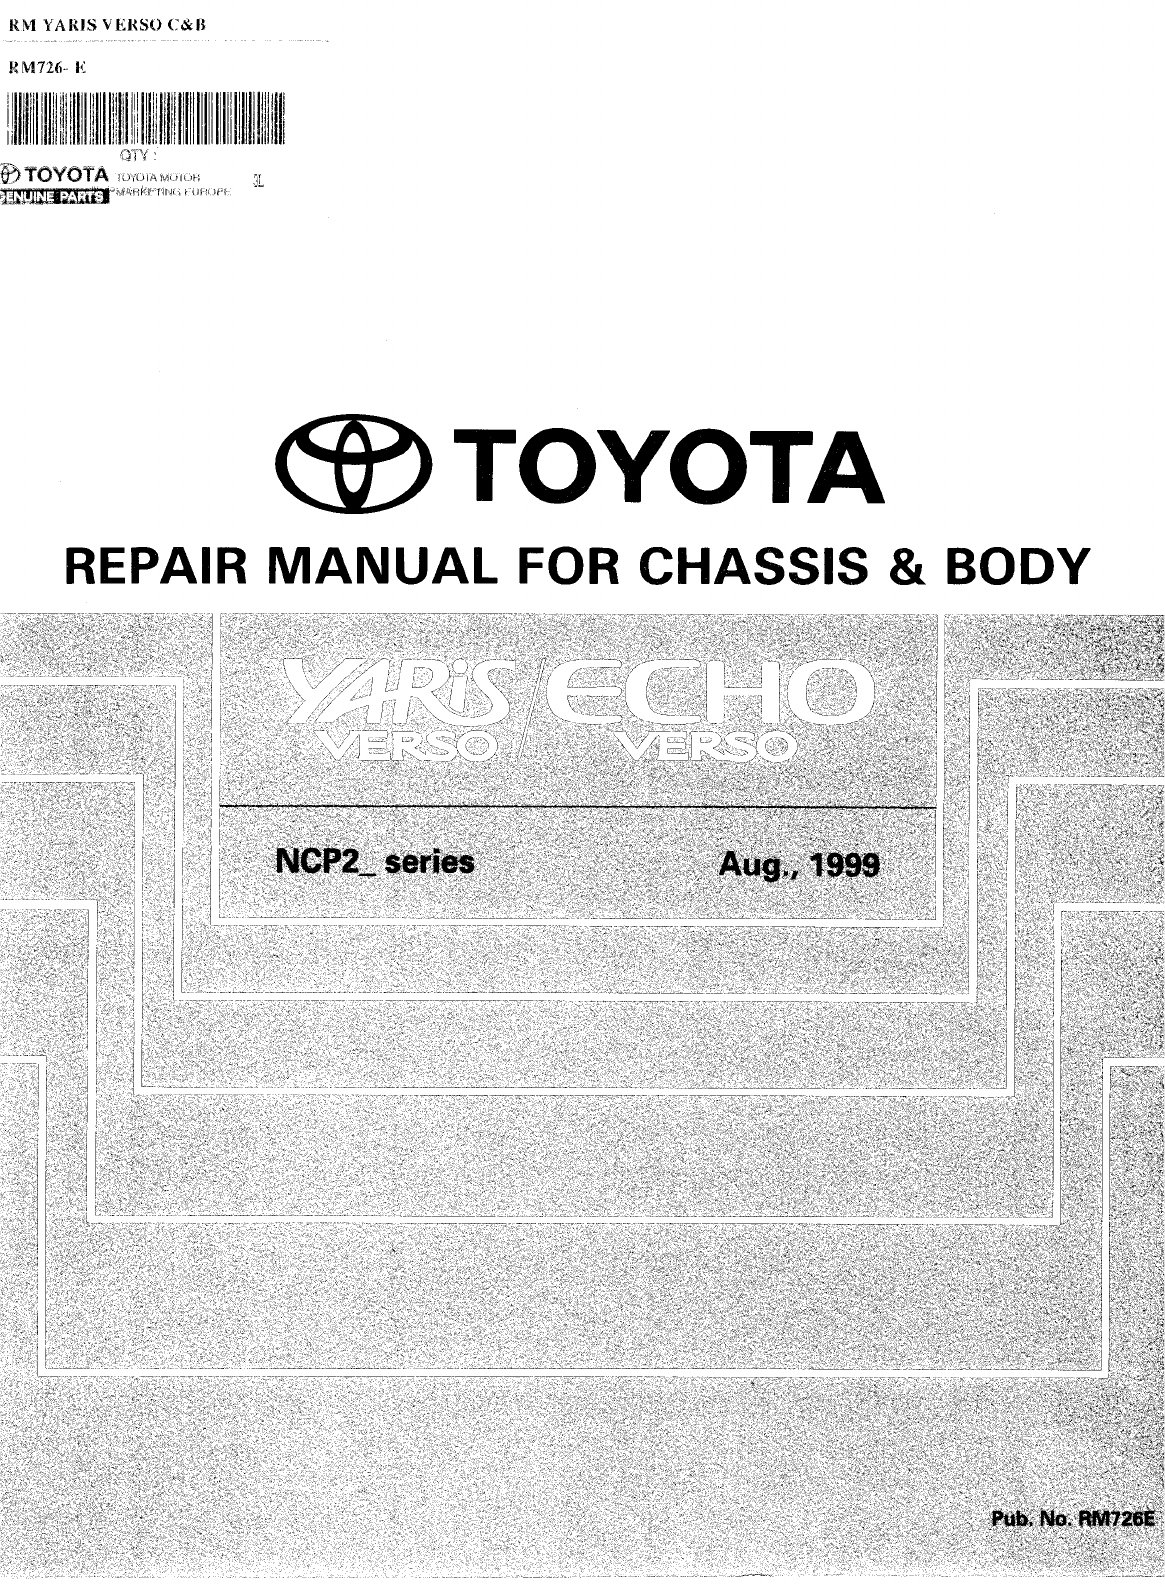 Toyota Aygo Workshop Manual Pdf